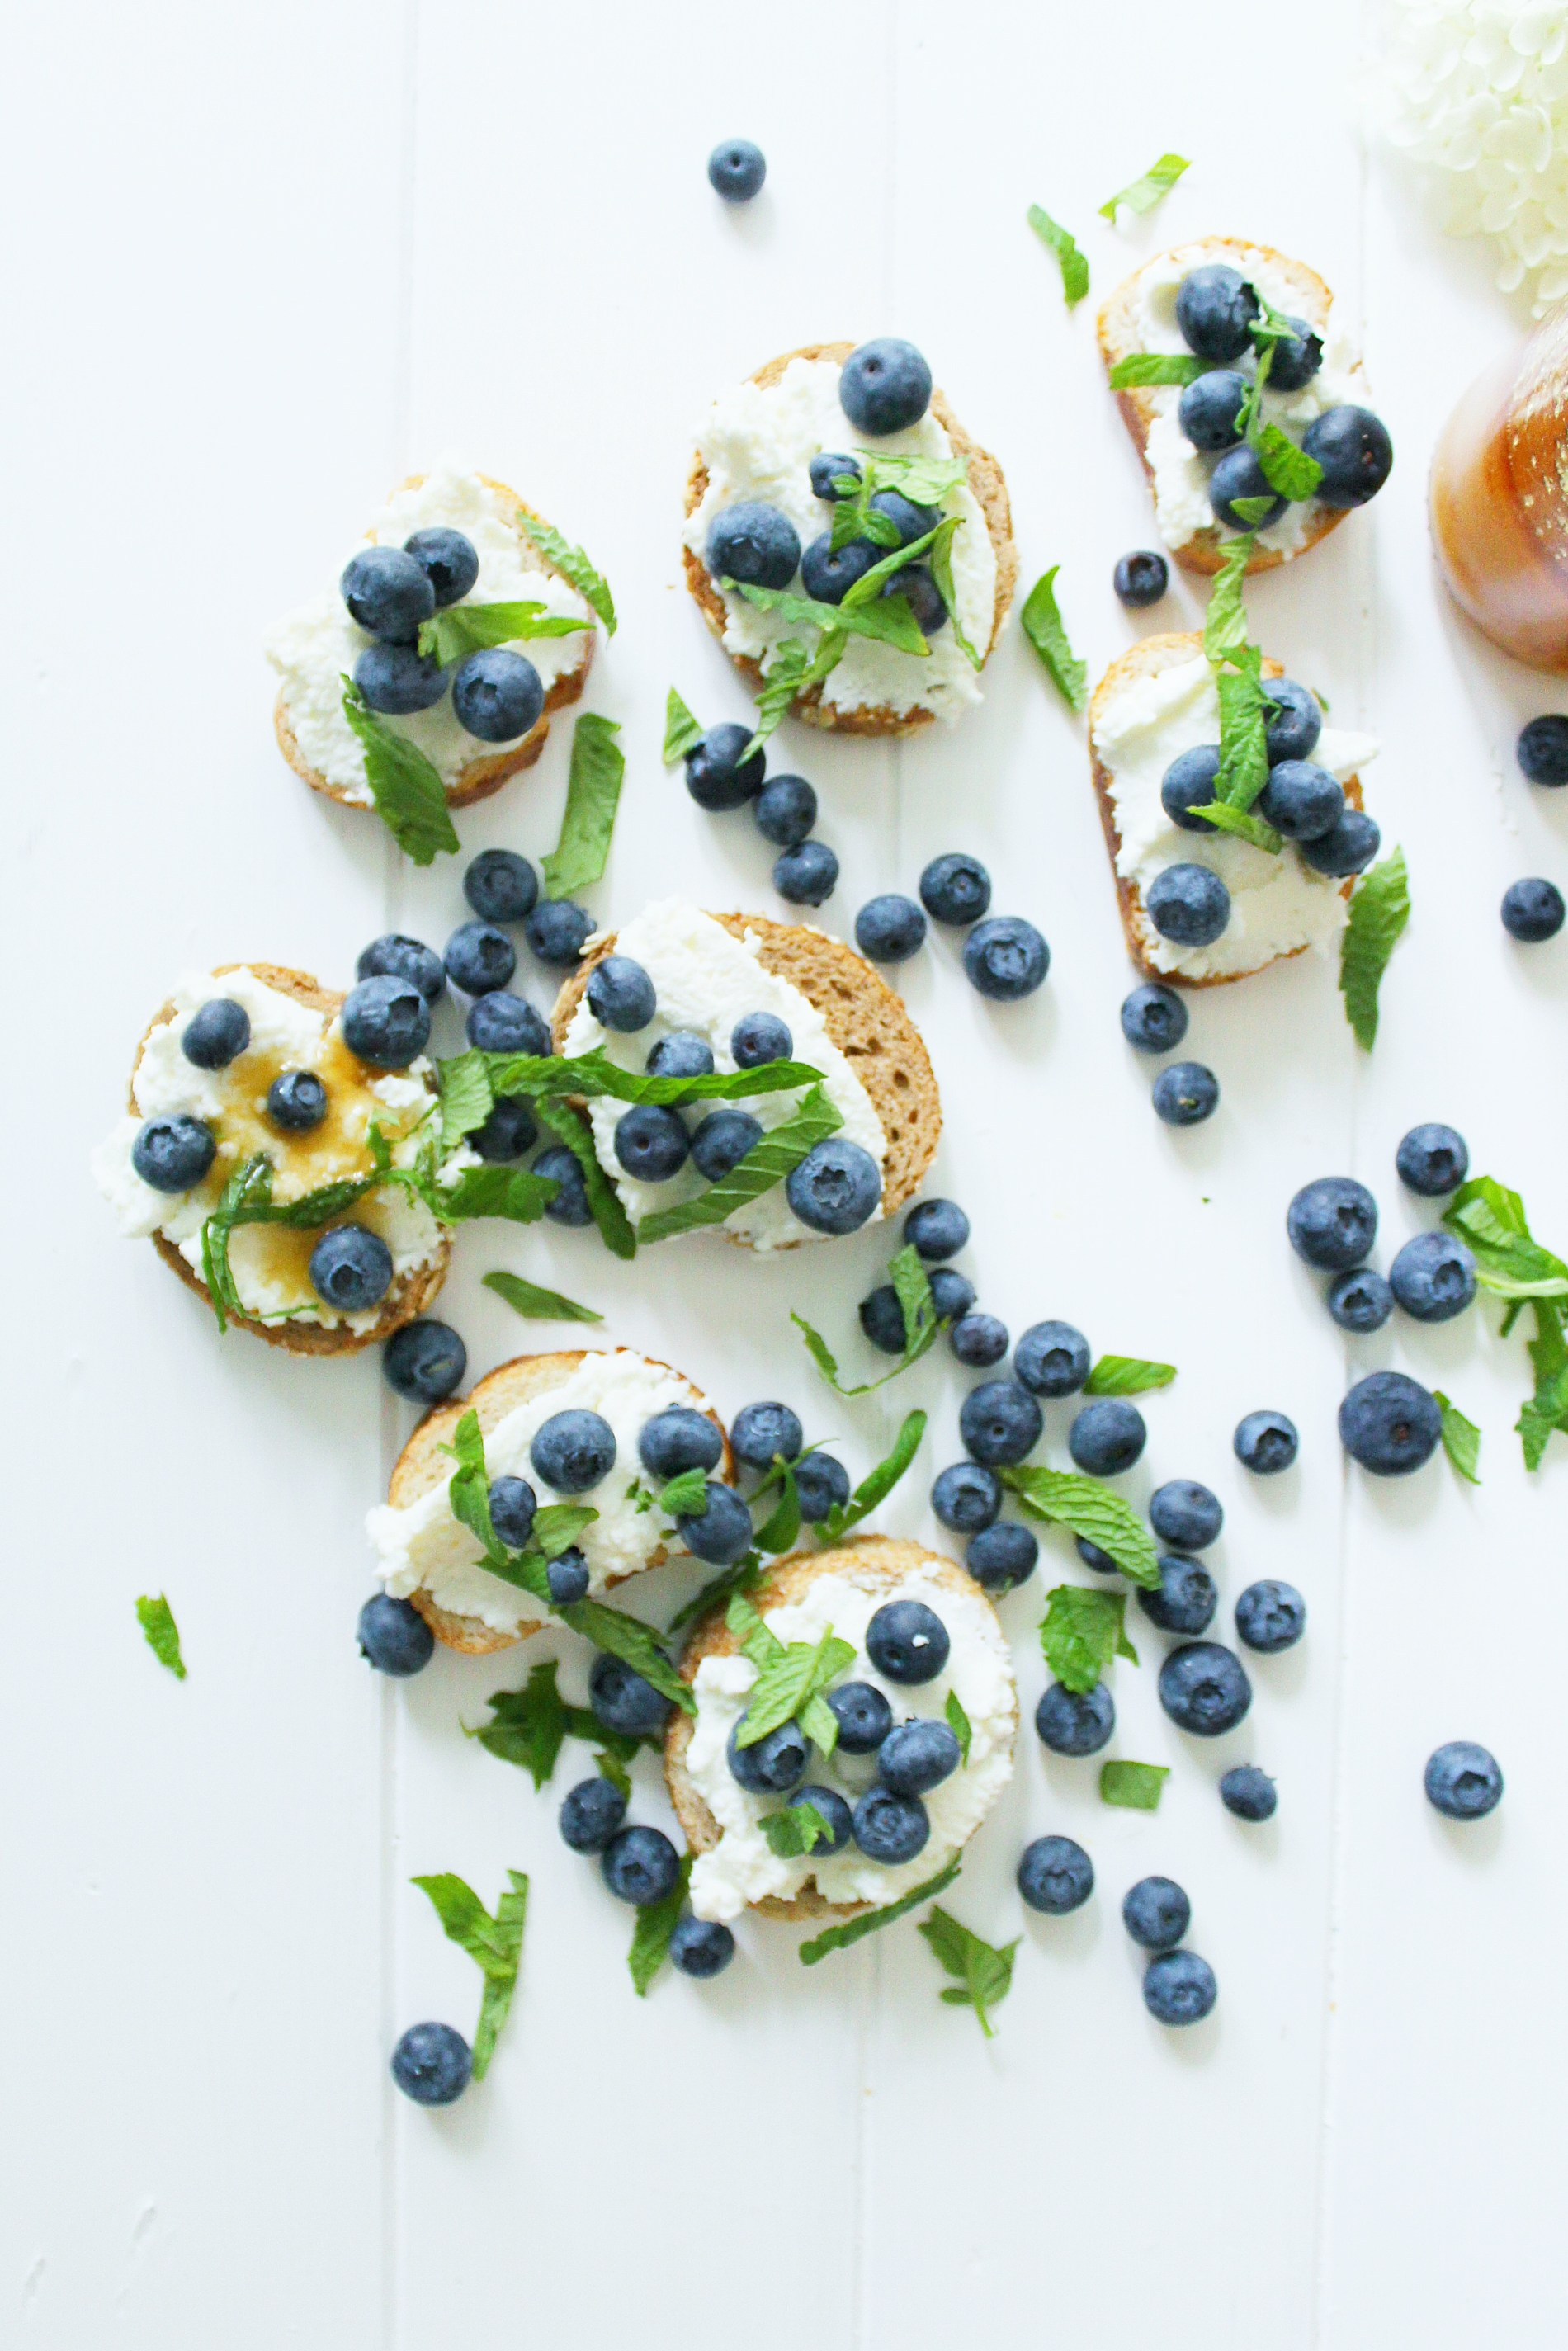 Blueberry Ricotta Crostini with Wildflower Honey